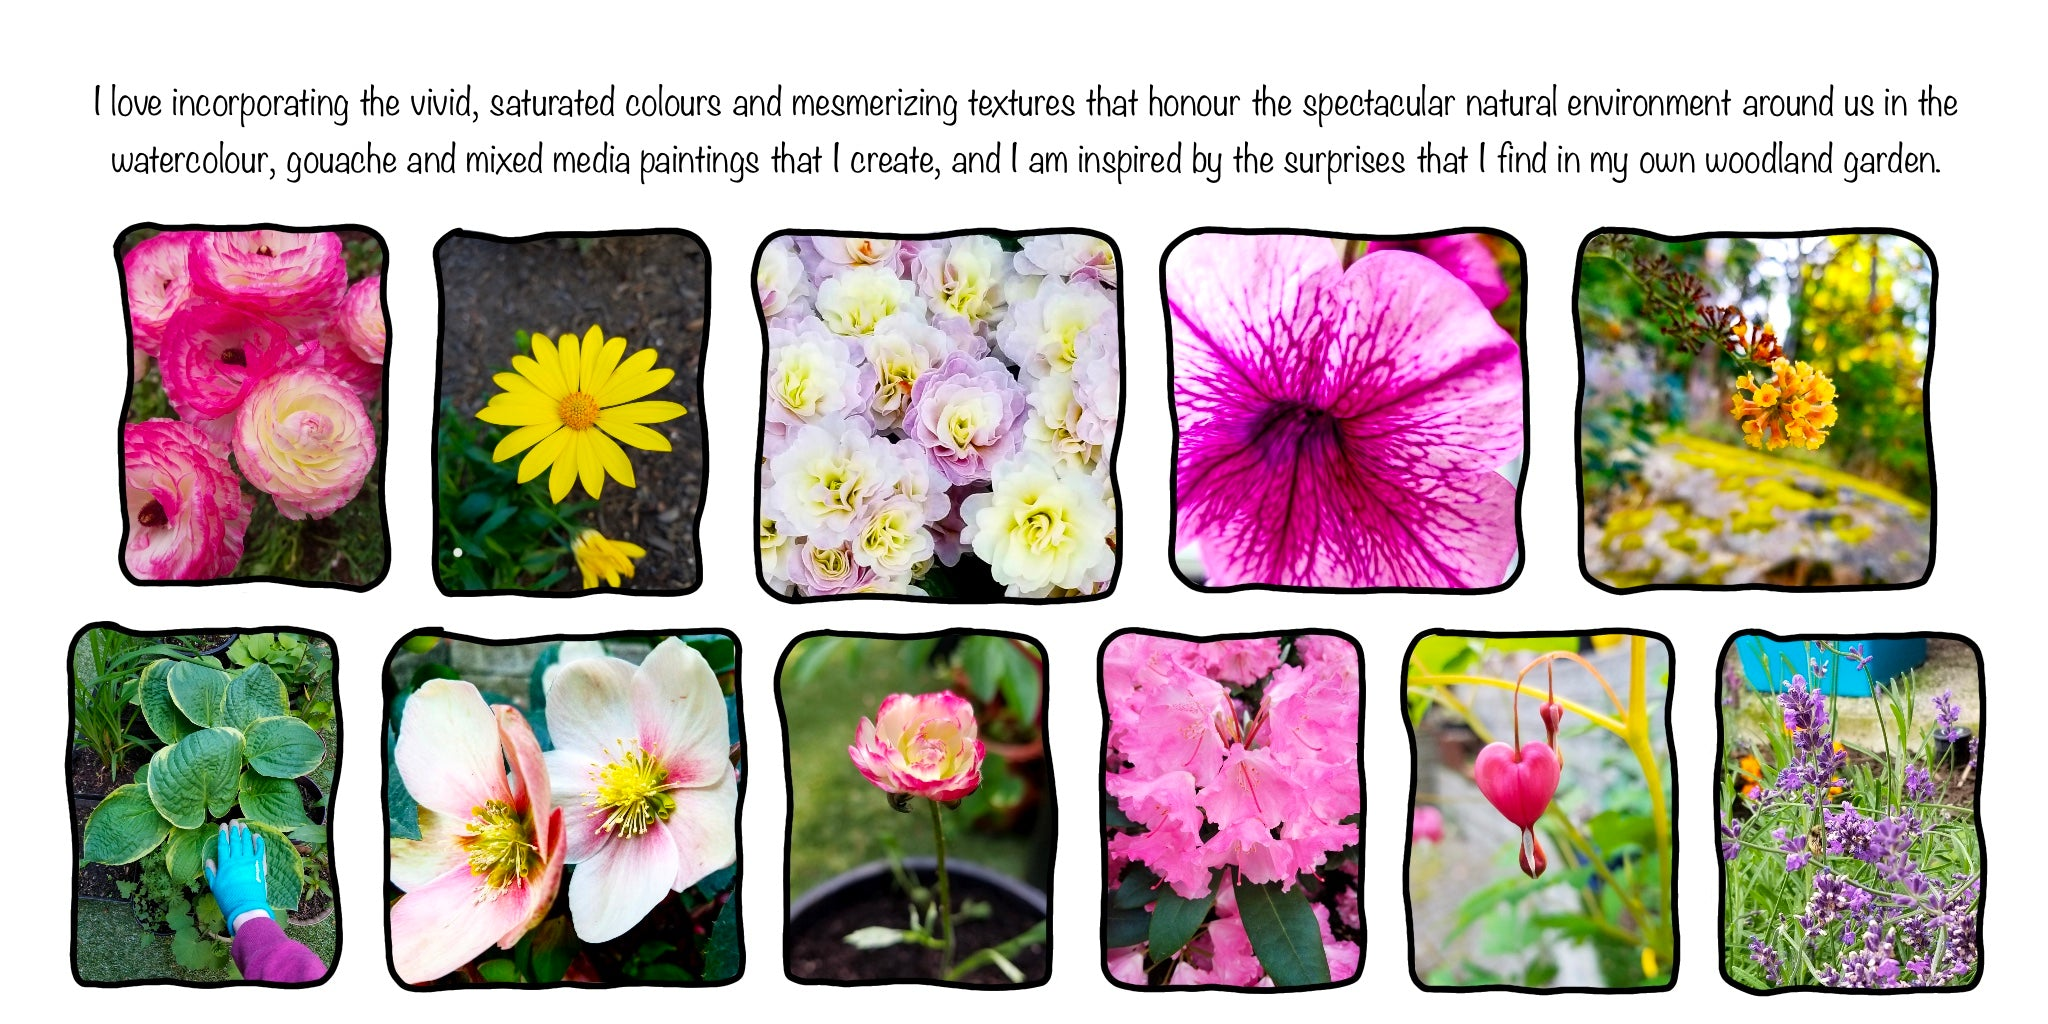 I love incorporating the vivid, saturated colours and mesmerizing textures that honour the spectacular natural environment around us in the watercolour, gouache, and mixed media paintings I create, and I am inspired by the surprises I find in my own woodland garden.